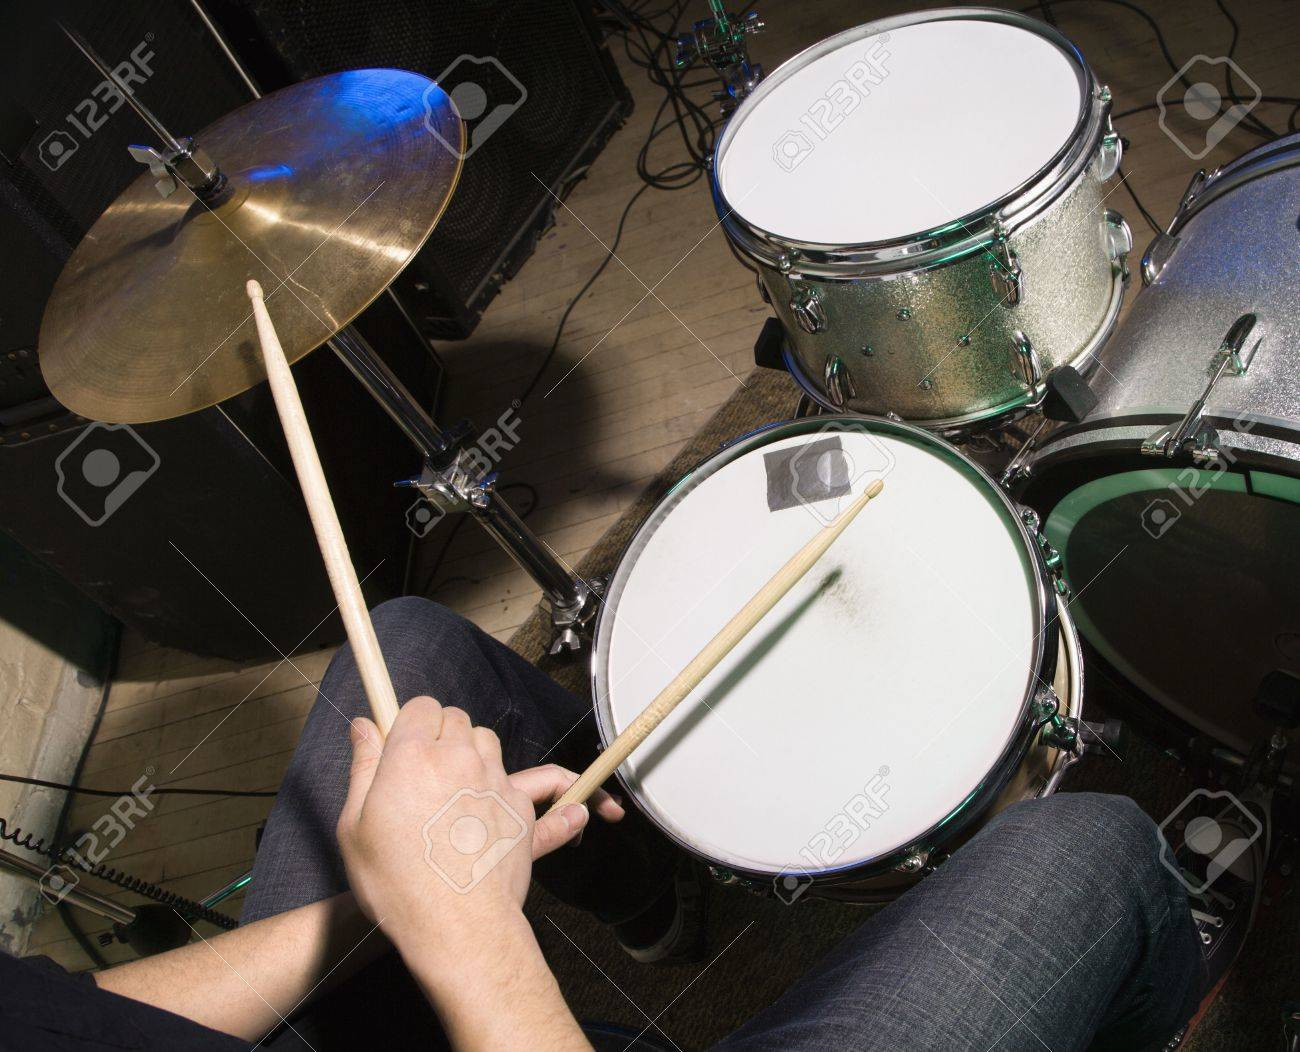 Above View Of Drummer S Hands Holding Drumsticks Playing On Drumset